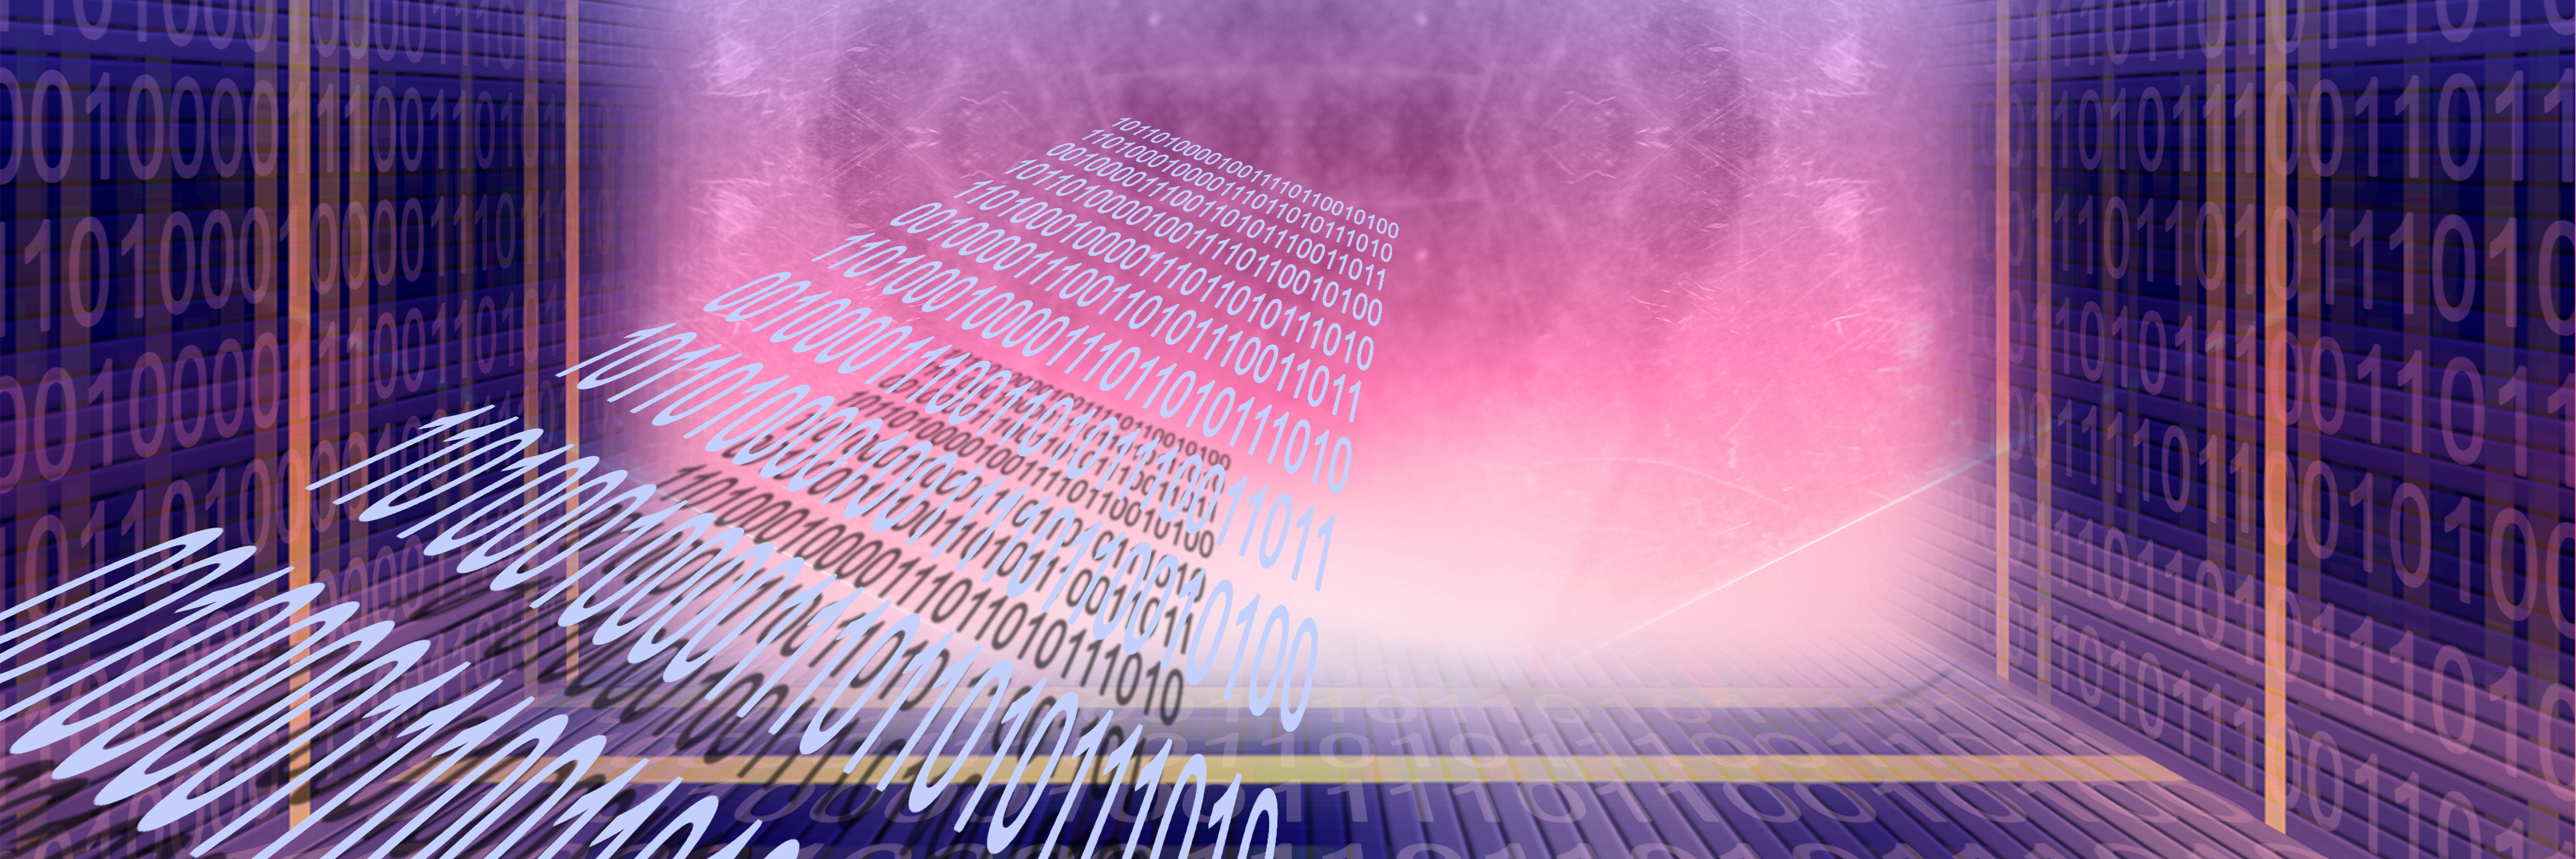 EDA launches work on research prototype for cyber defence situation awareness